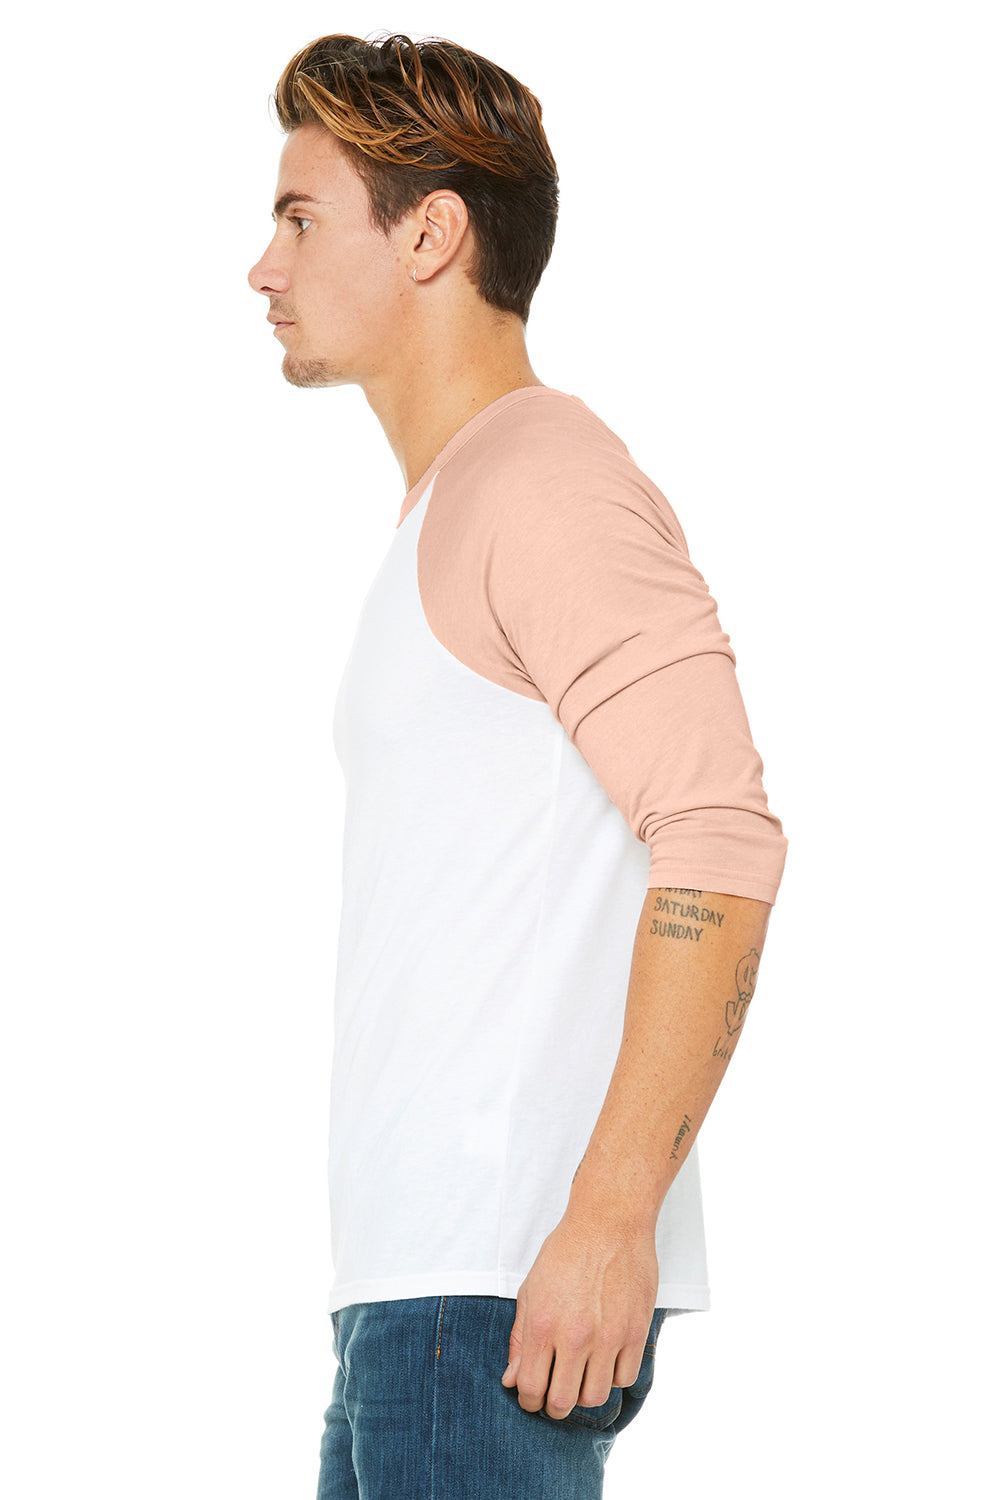 Bella + Canvas 3200 Mens 3/4 Sleeve Crewneck T-Shirt White/Heather Peach Side